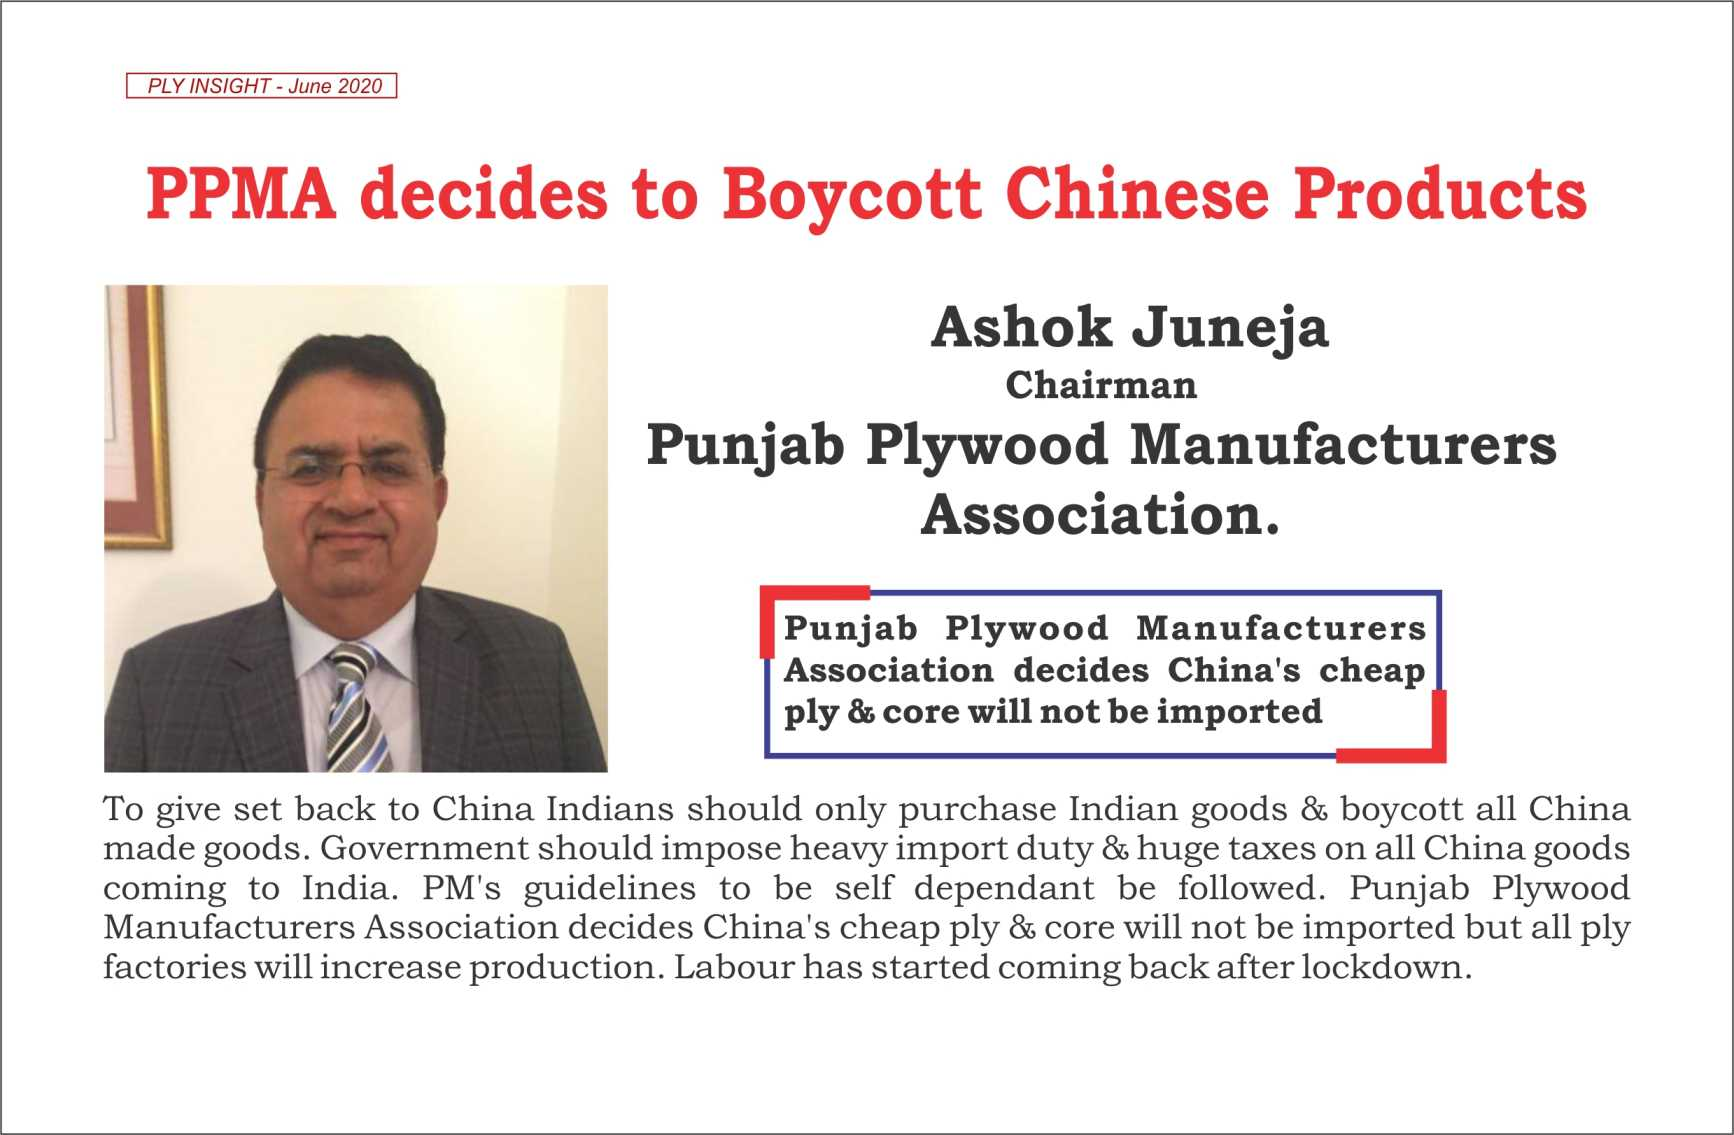 ppma decided to boycott chinese products